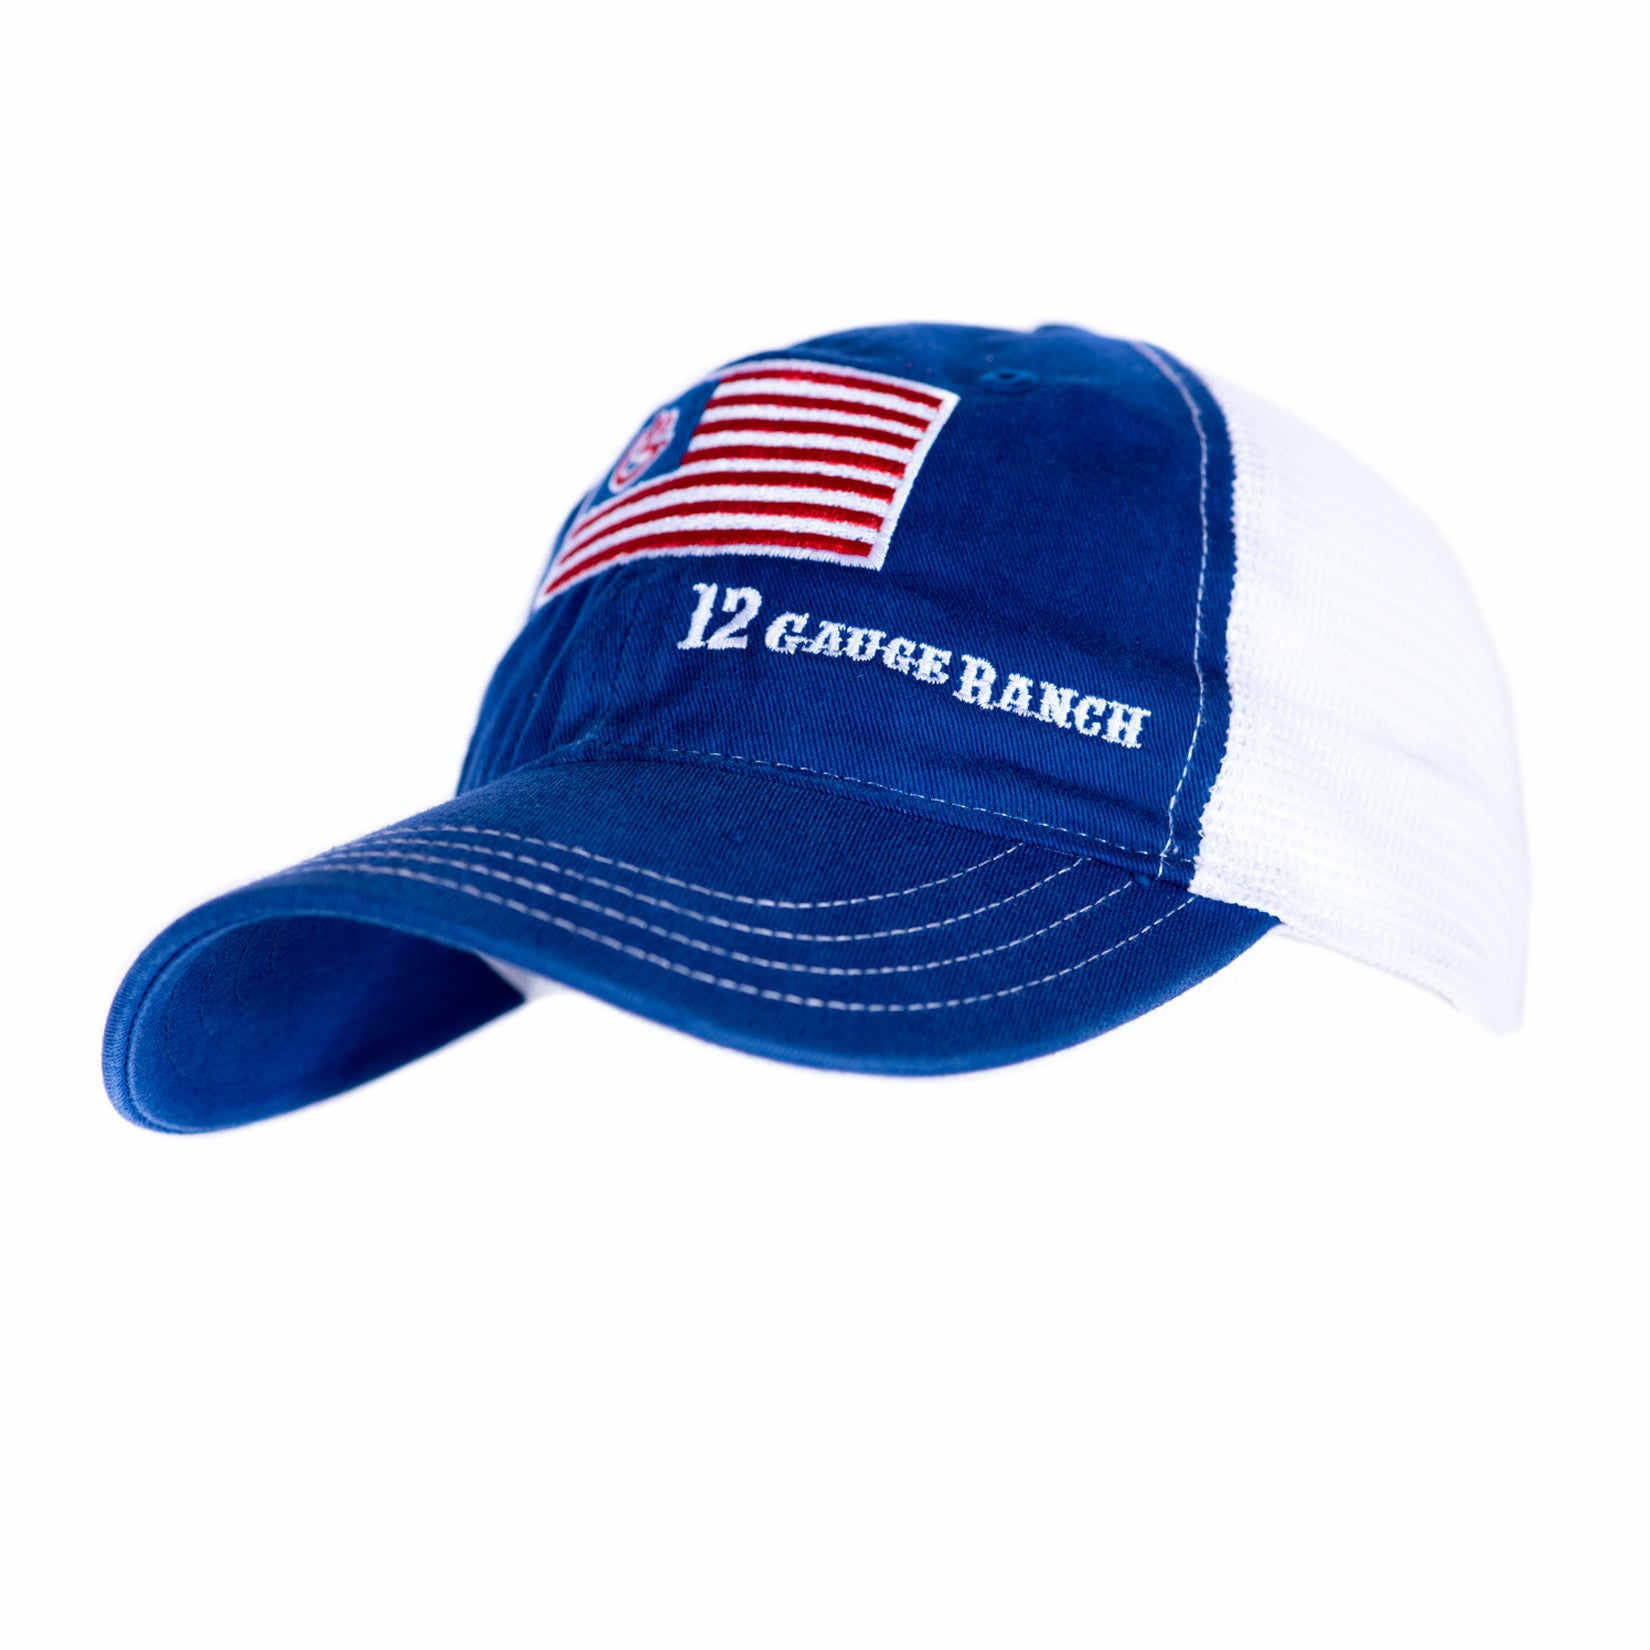 12 Gauge Ranch Patriotic Flag Low Profile Baseball Hat, Hats, 12 Gauge Ranch, 12 Gauge Ranch 12 Gauge Ranch